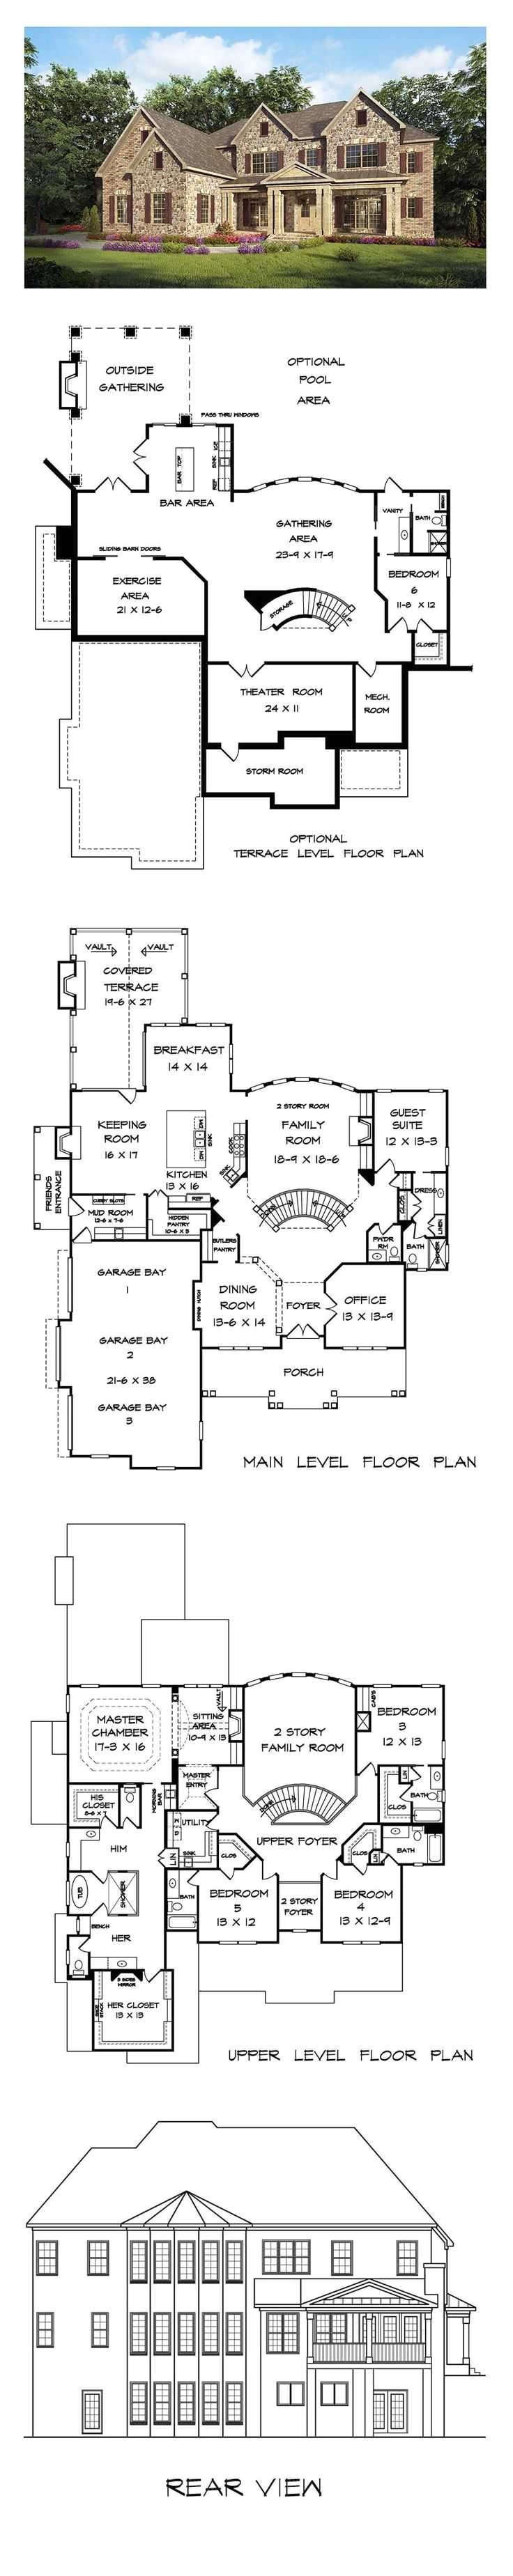 basement only house plans with 458 best dream house plans images on pinterest